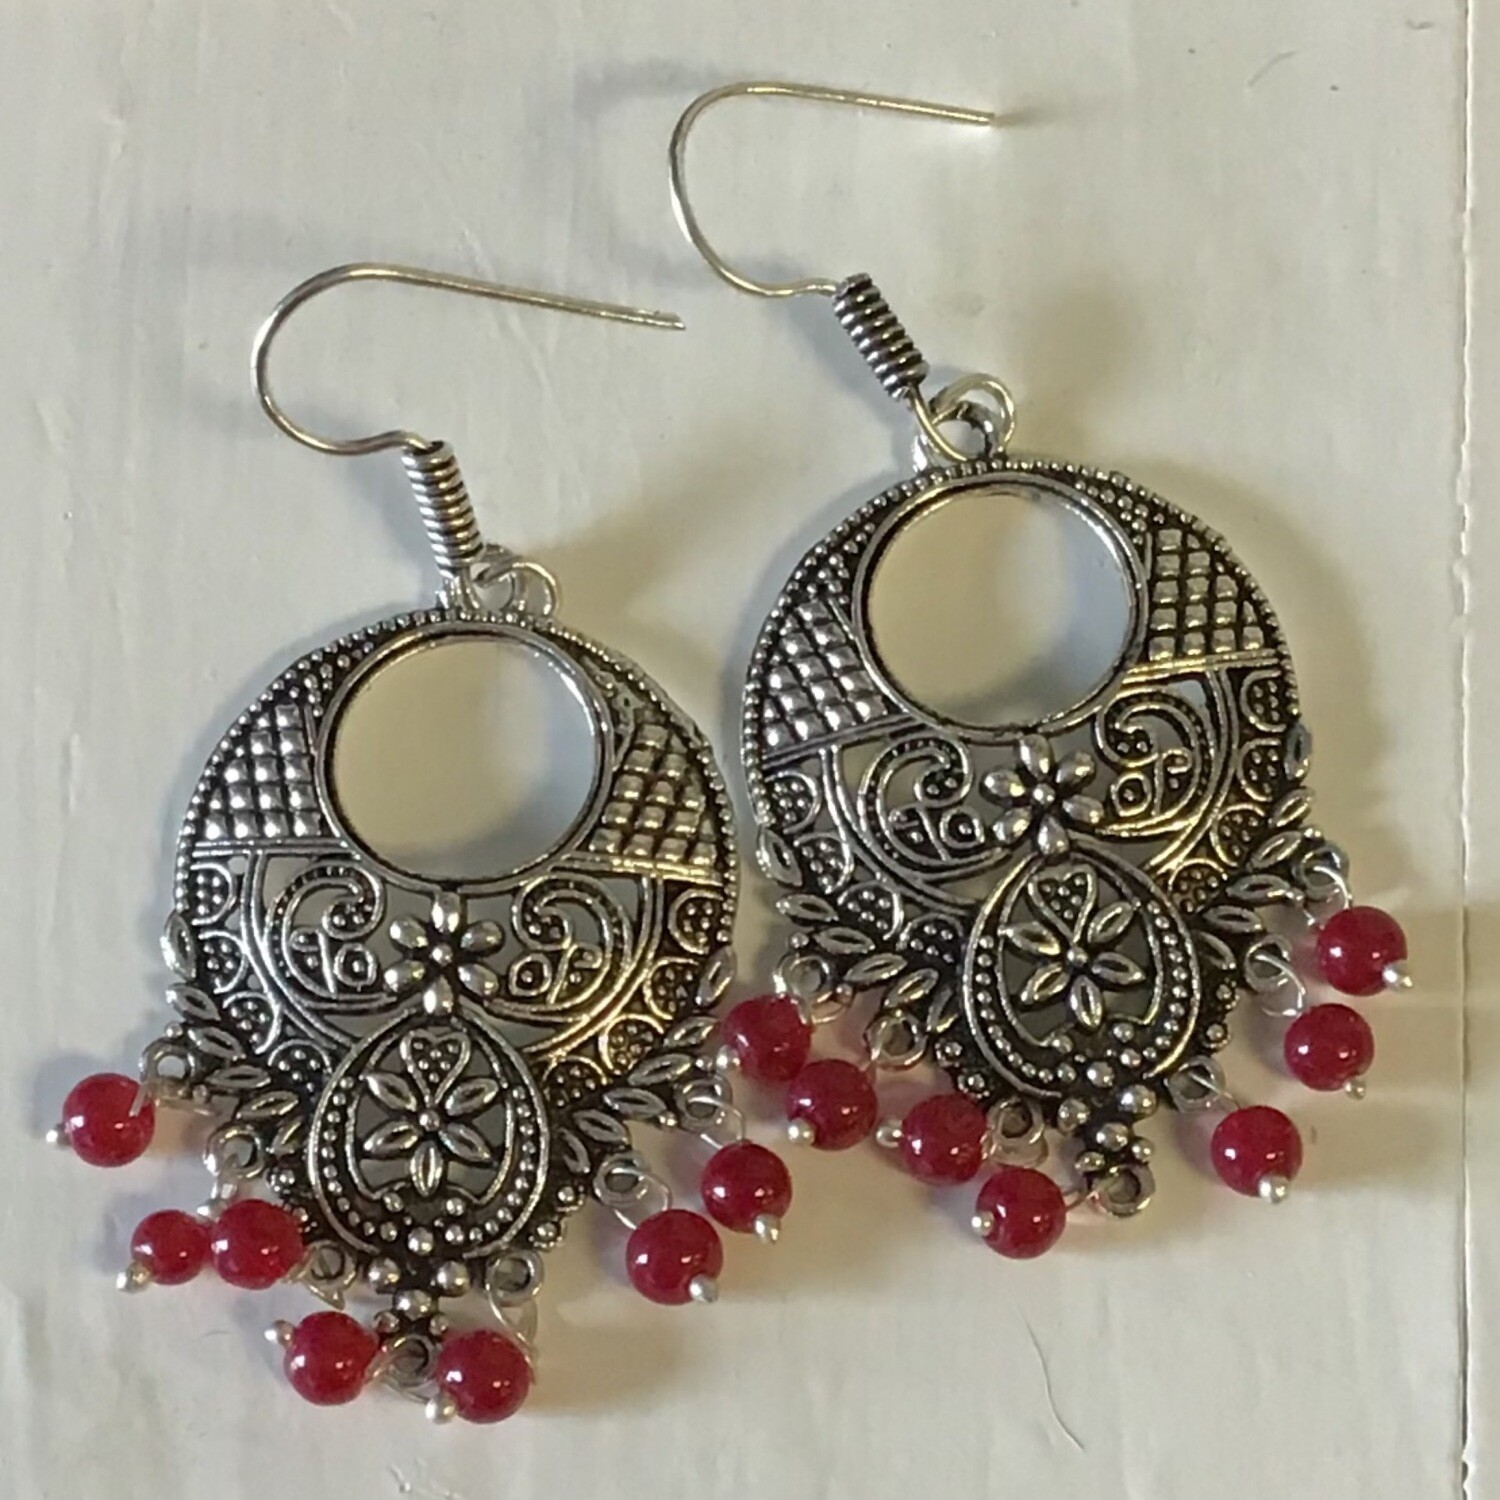 "Earrings with Beads White Metal - 1""W, 2.5""L"